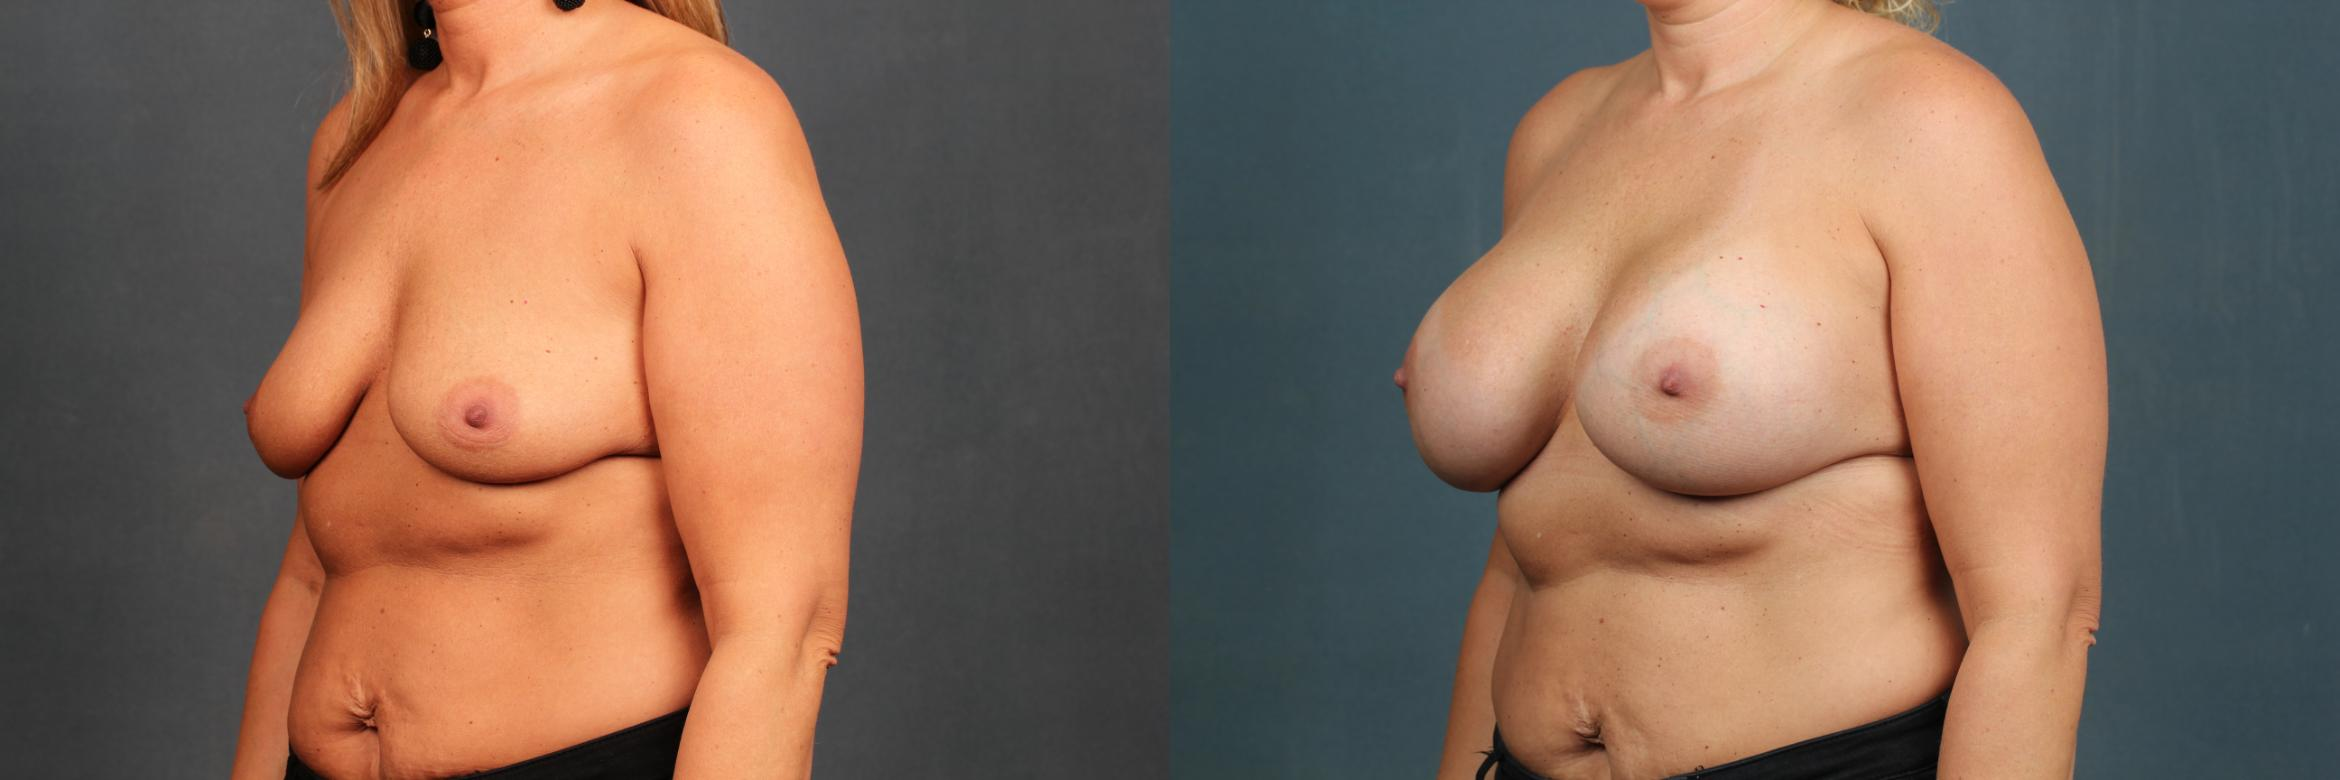 Enlargement - Silicone Case 591 Before & After View #2 | Louisville, KY | CaloAesthetics® Plastic Surgery Center